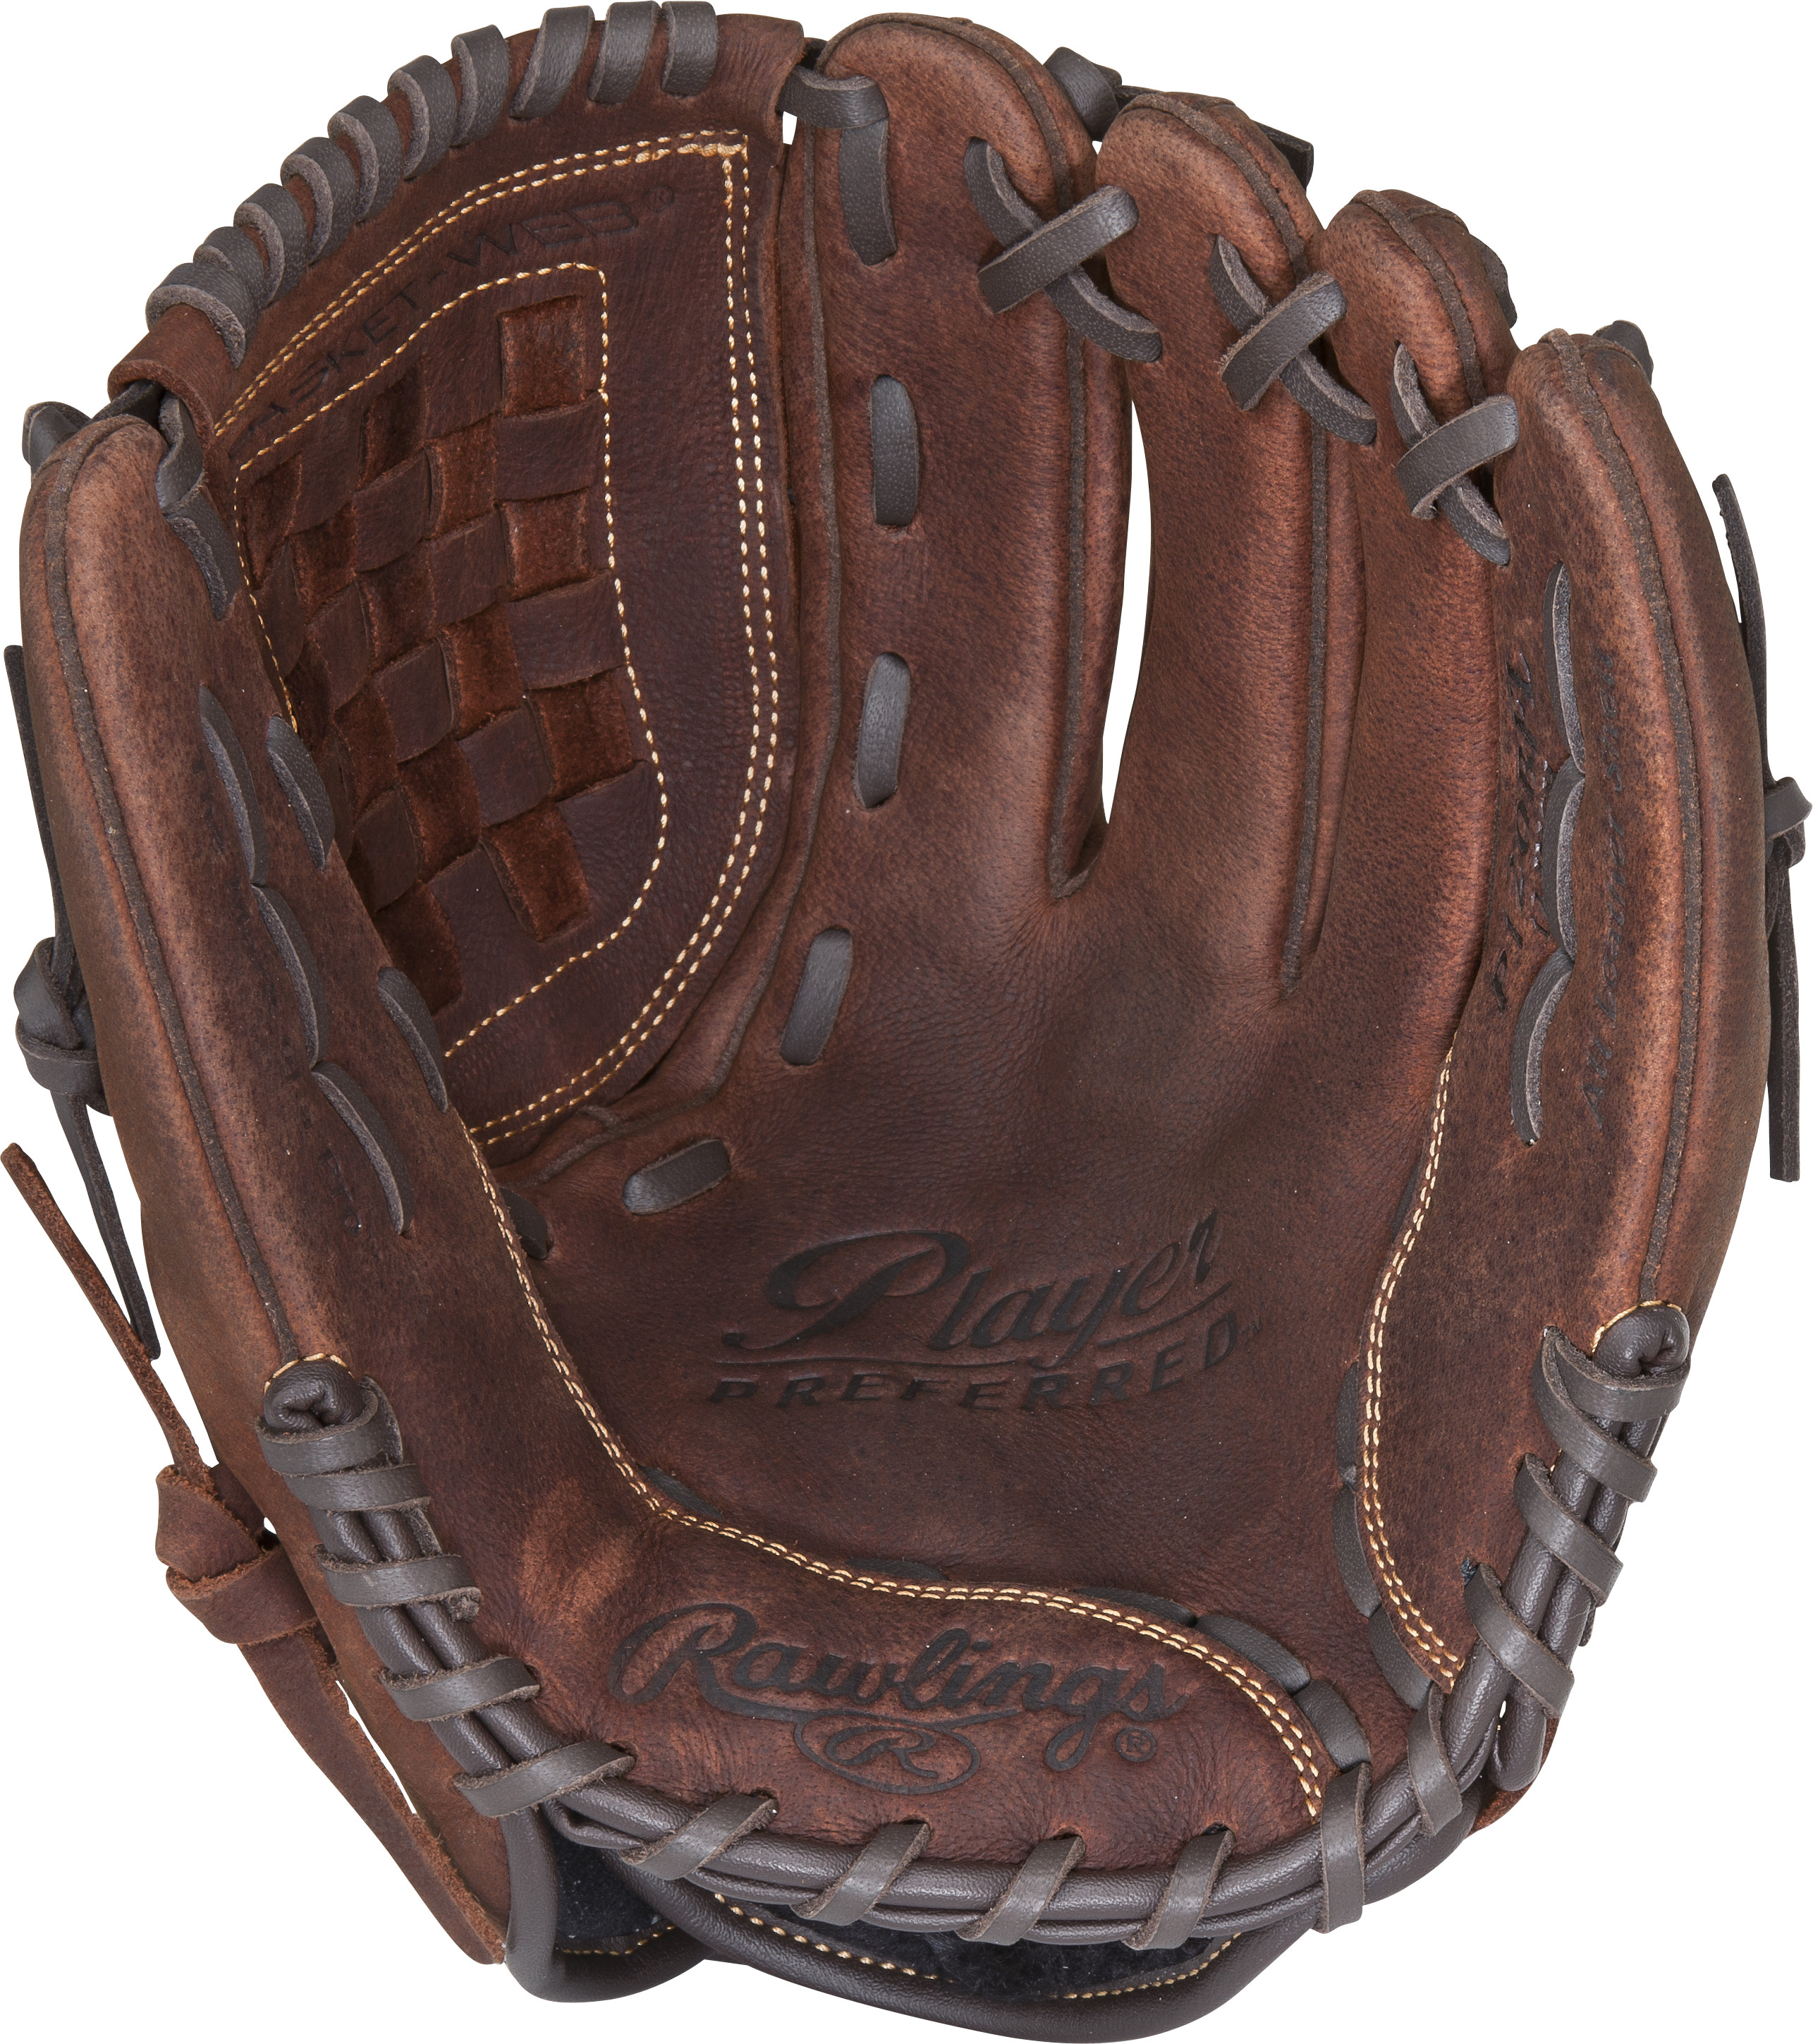 http://www.bestbatdeals.com/images/gloves/rawlings/P120BFL_palm.jpg